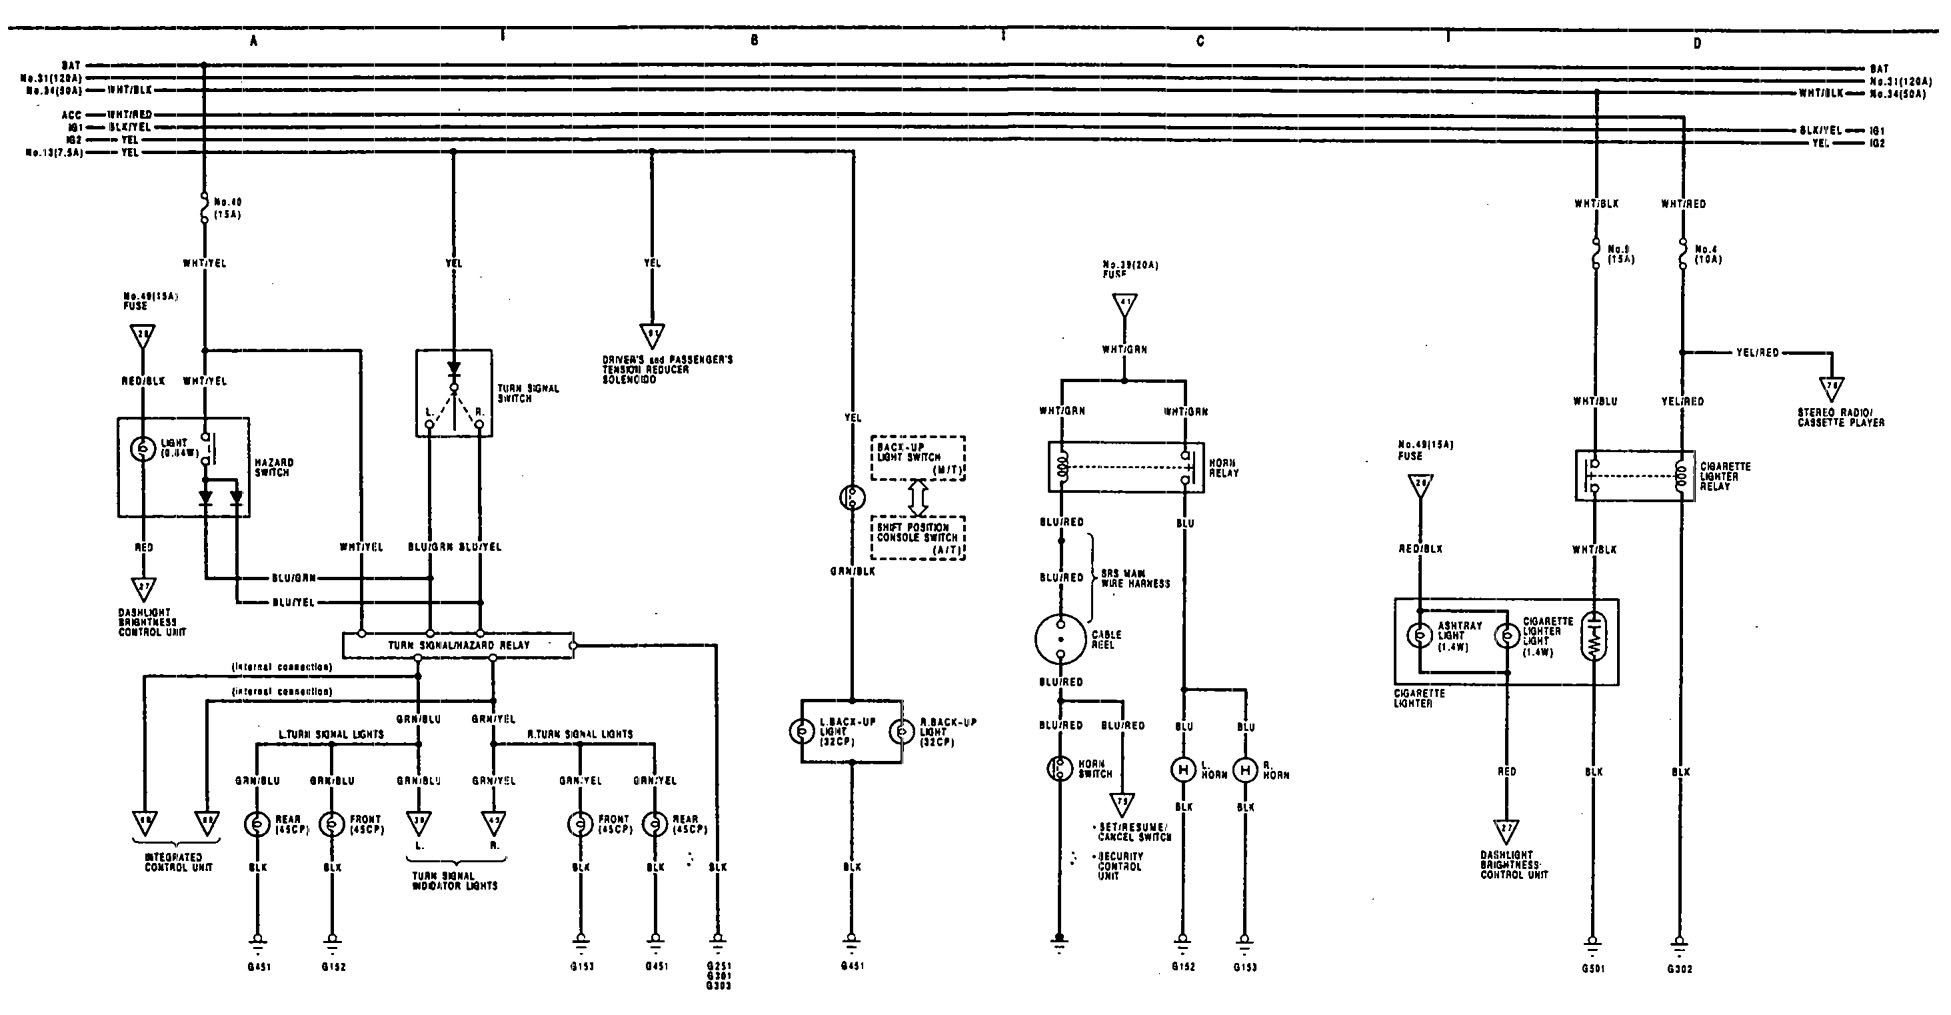 acura legend  1991  - wiring diagram - horn